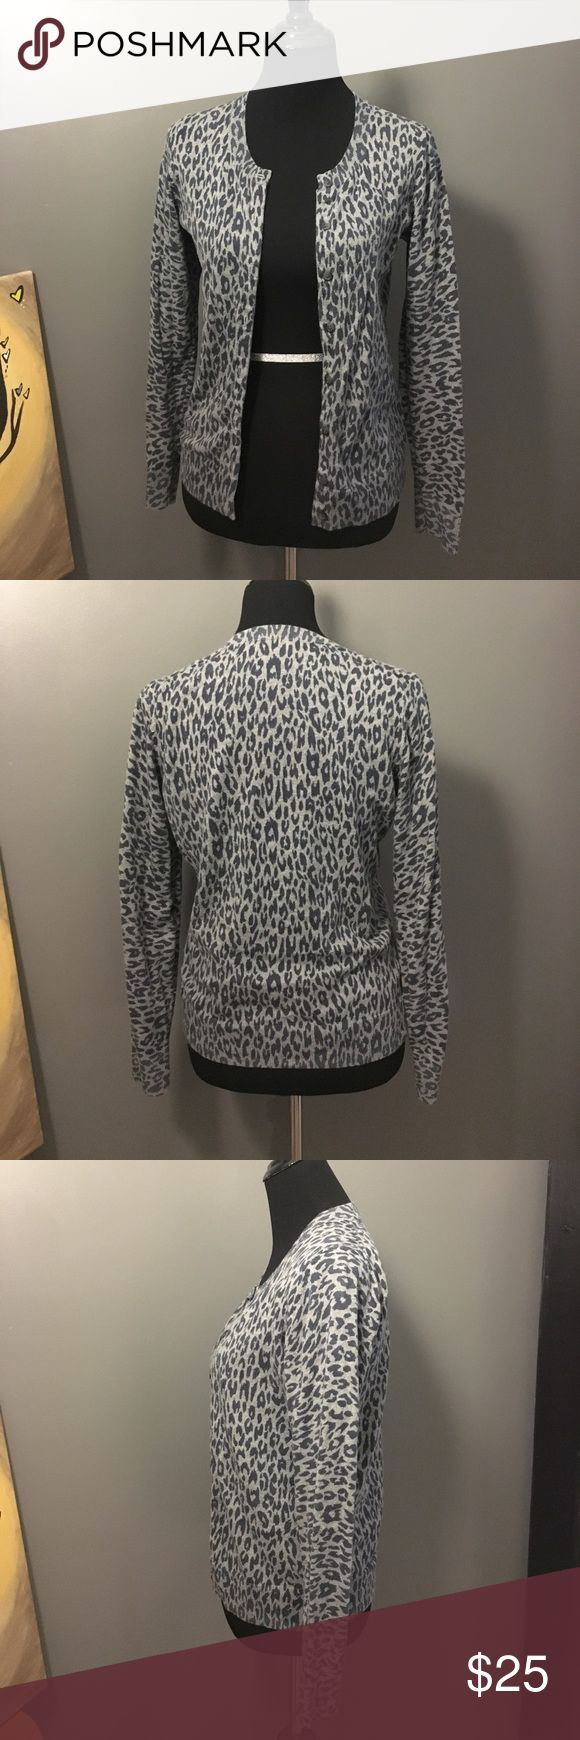 GAP Animal Print Cardigan Seriously, how great is this cardigan!? Gray with blue leopard print. In excellent condition, worn only once for a short time. From Gap Factory. GAP Sweaters Cardigans